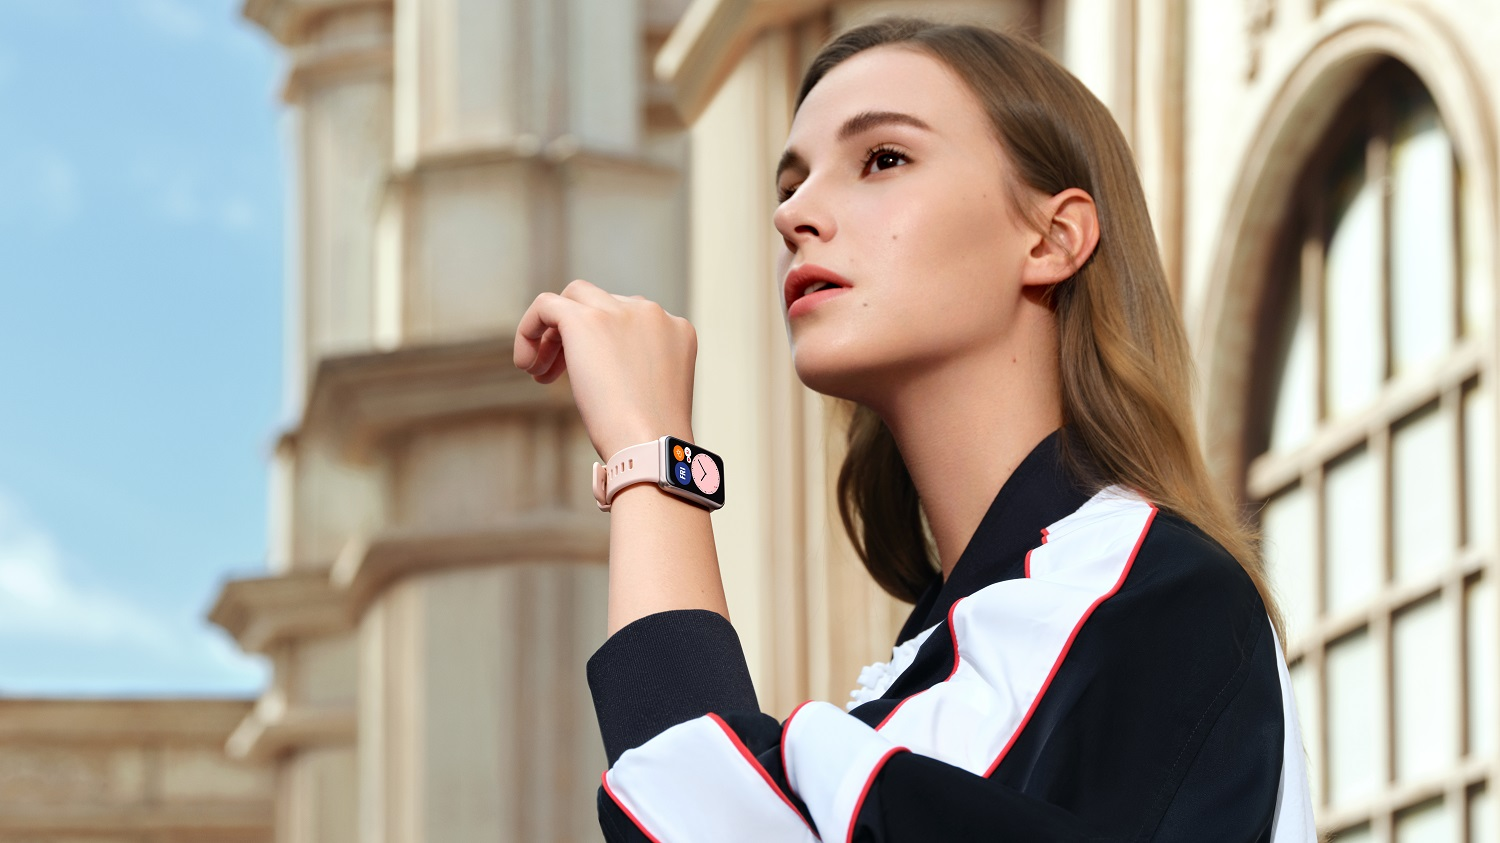 HUAWEI WATCH FIT and FreeLace Pro Available for Sale Beginning 9th September